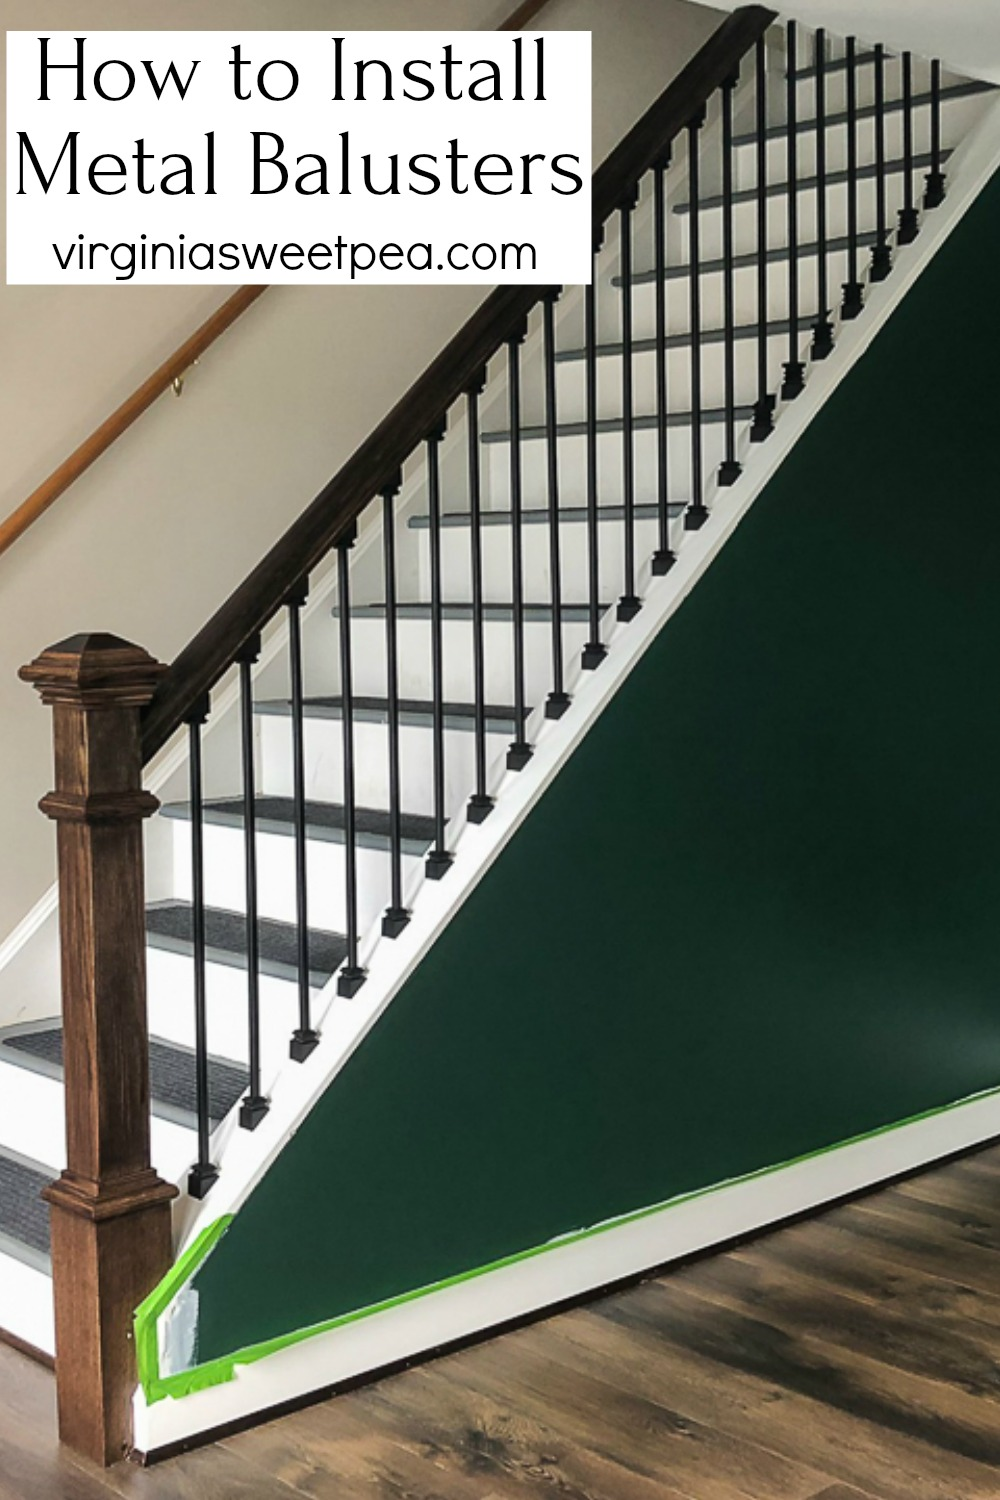 How to Install Metal Balusters